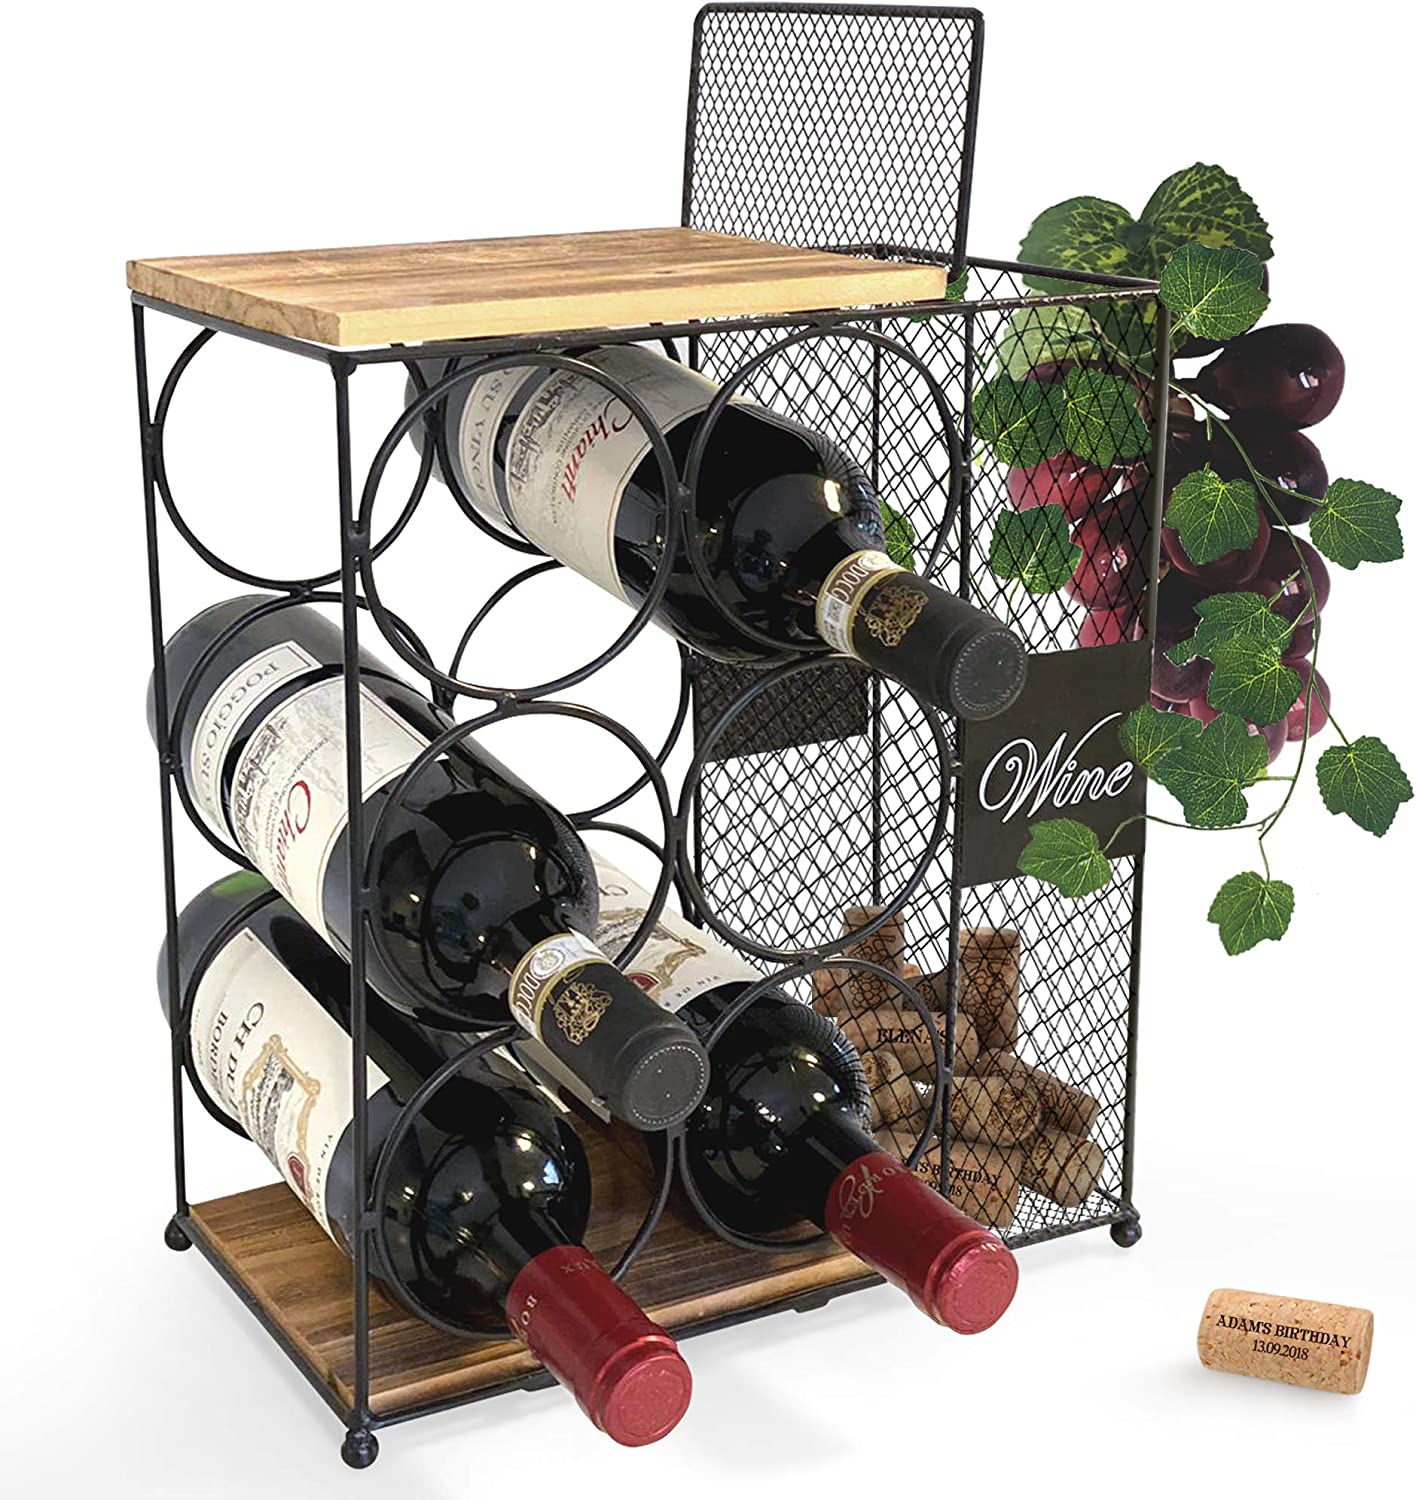 Amazon Com 6 Bottle Wine Rack With Cork Storage Store Red White Champagne Counter Wine Holder For Home Kitchen Decor Decorative Countertop Wine Holder Storage Rack Designed By Anna Stay